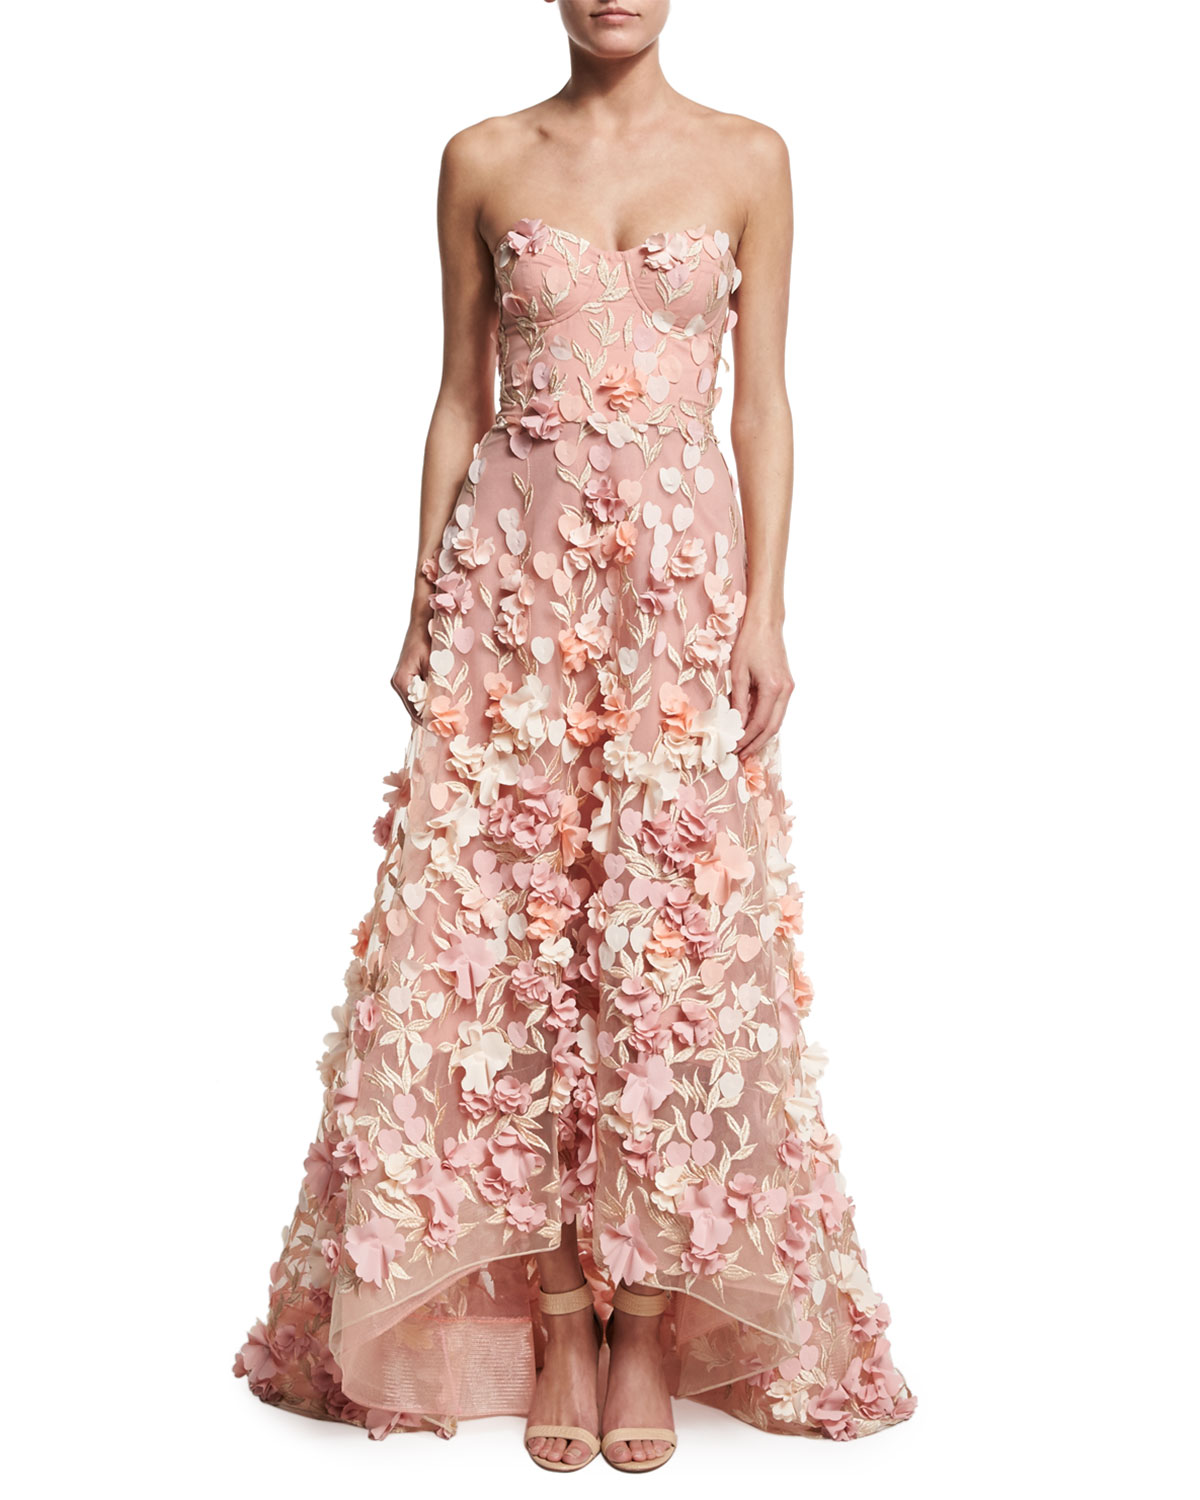 a718b517 Marchesa Notte Strapless High-Low Floral Tulle Gown, Blush | Neiman ...